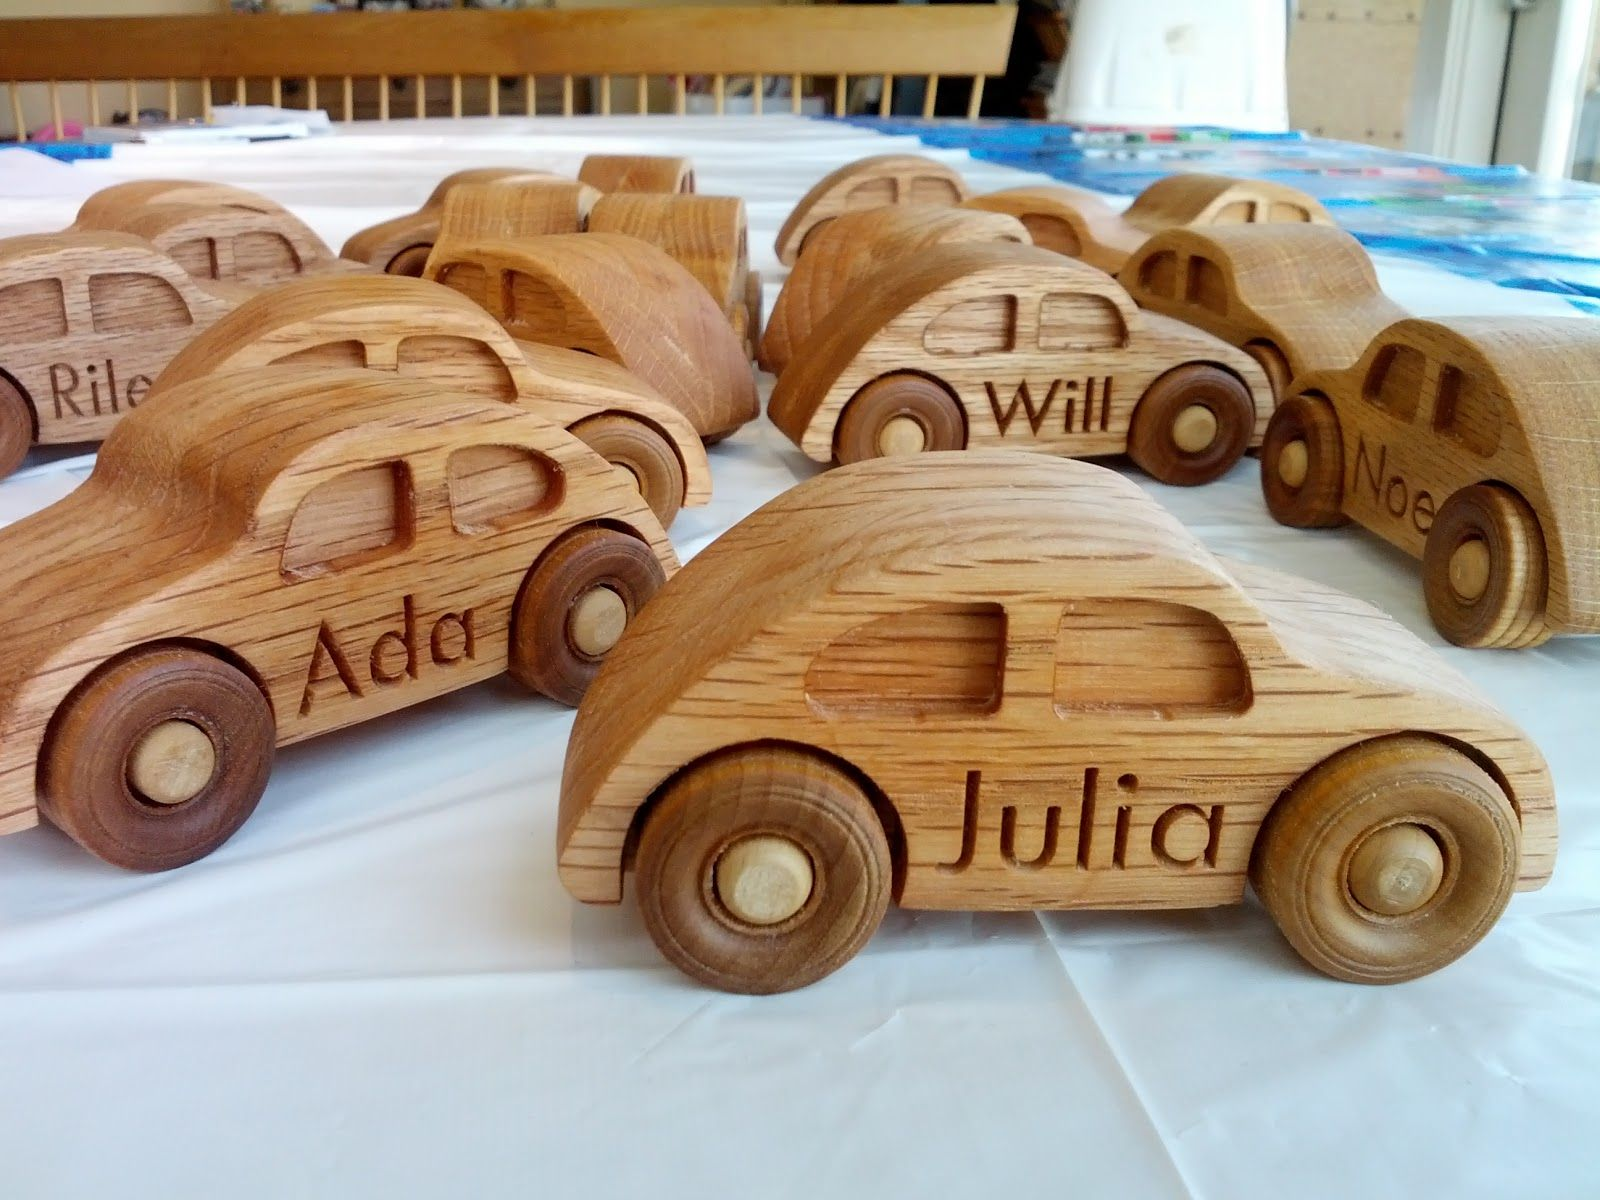 cnc dad: how to make wooden toy cars in a hurry | ww wooden